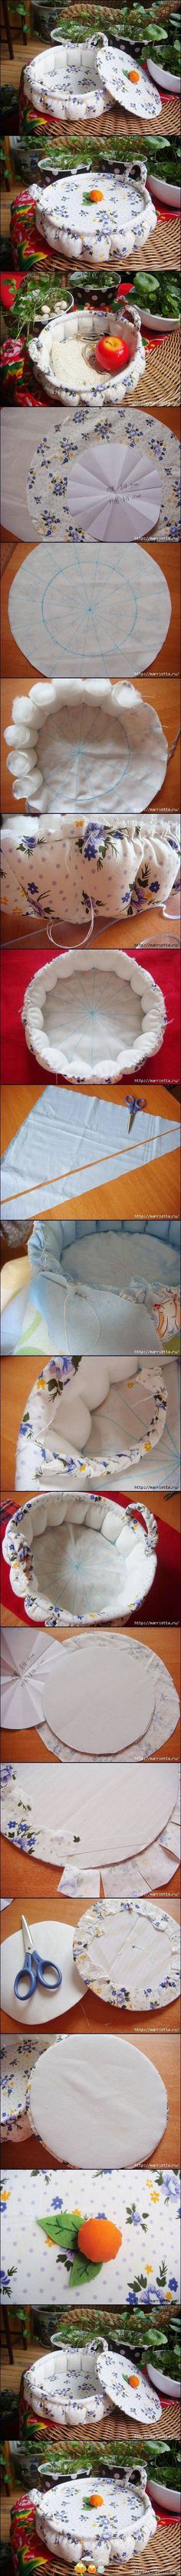 What a sweet basket. An experienced sewer could do this just from the pictures.